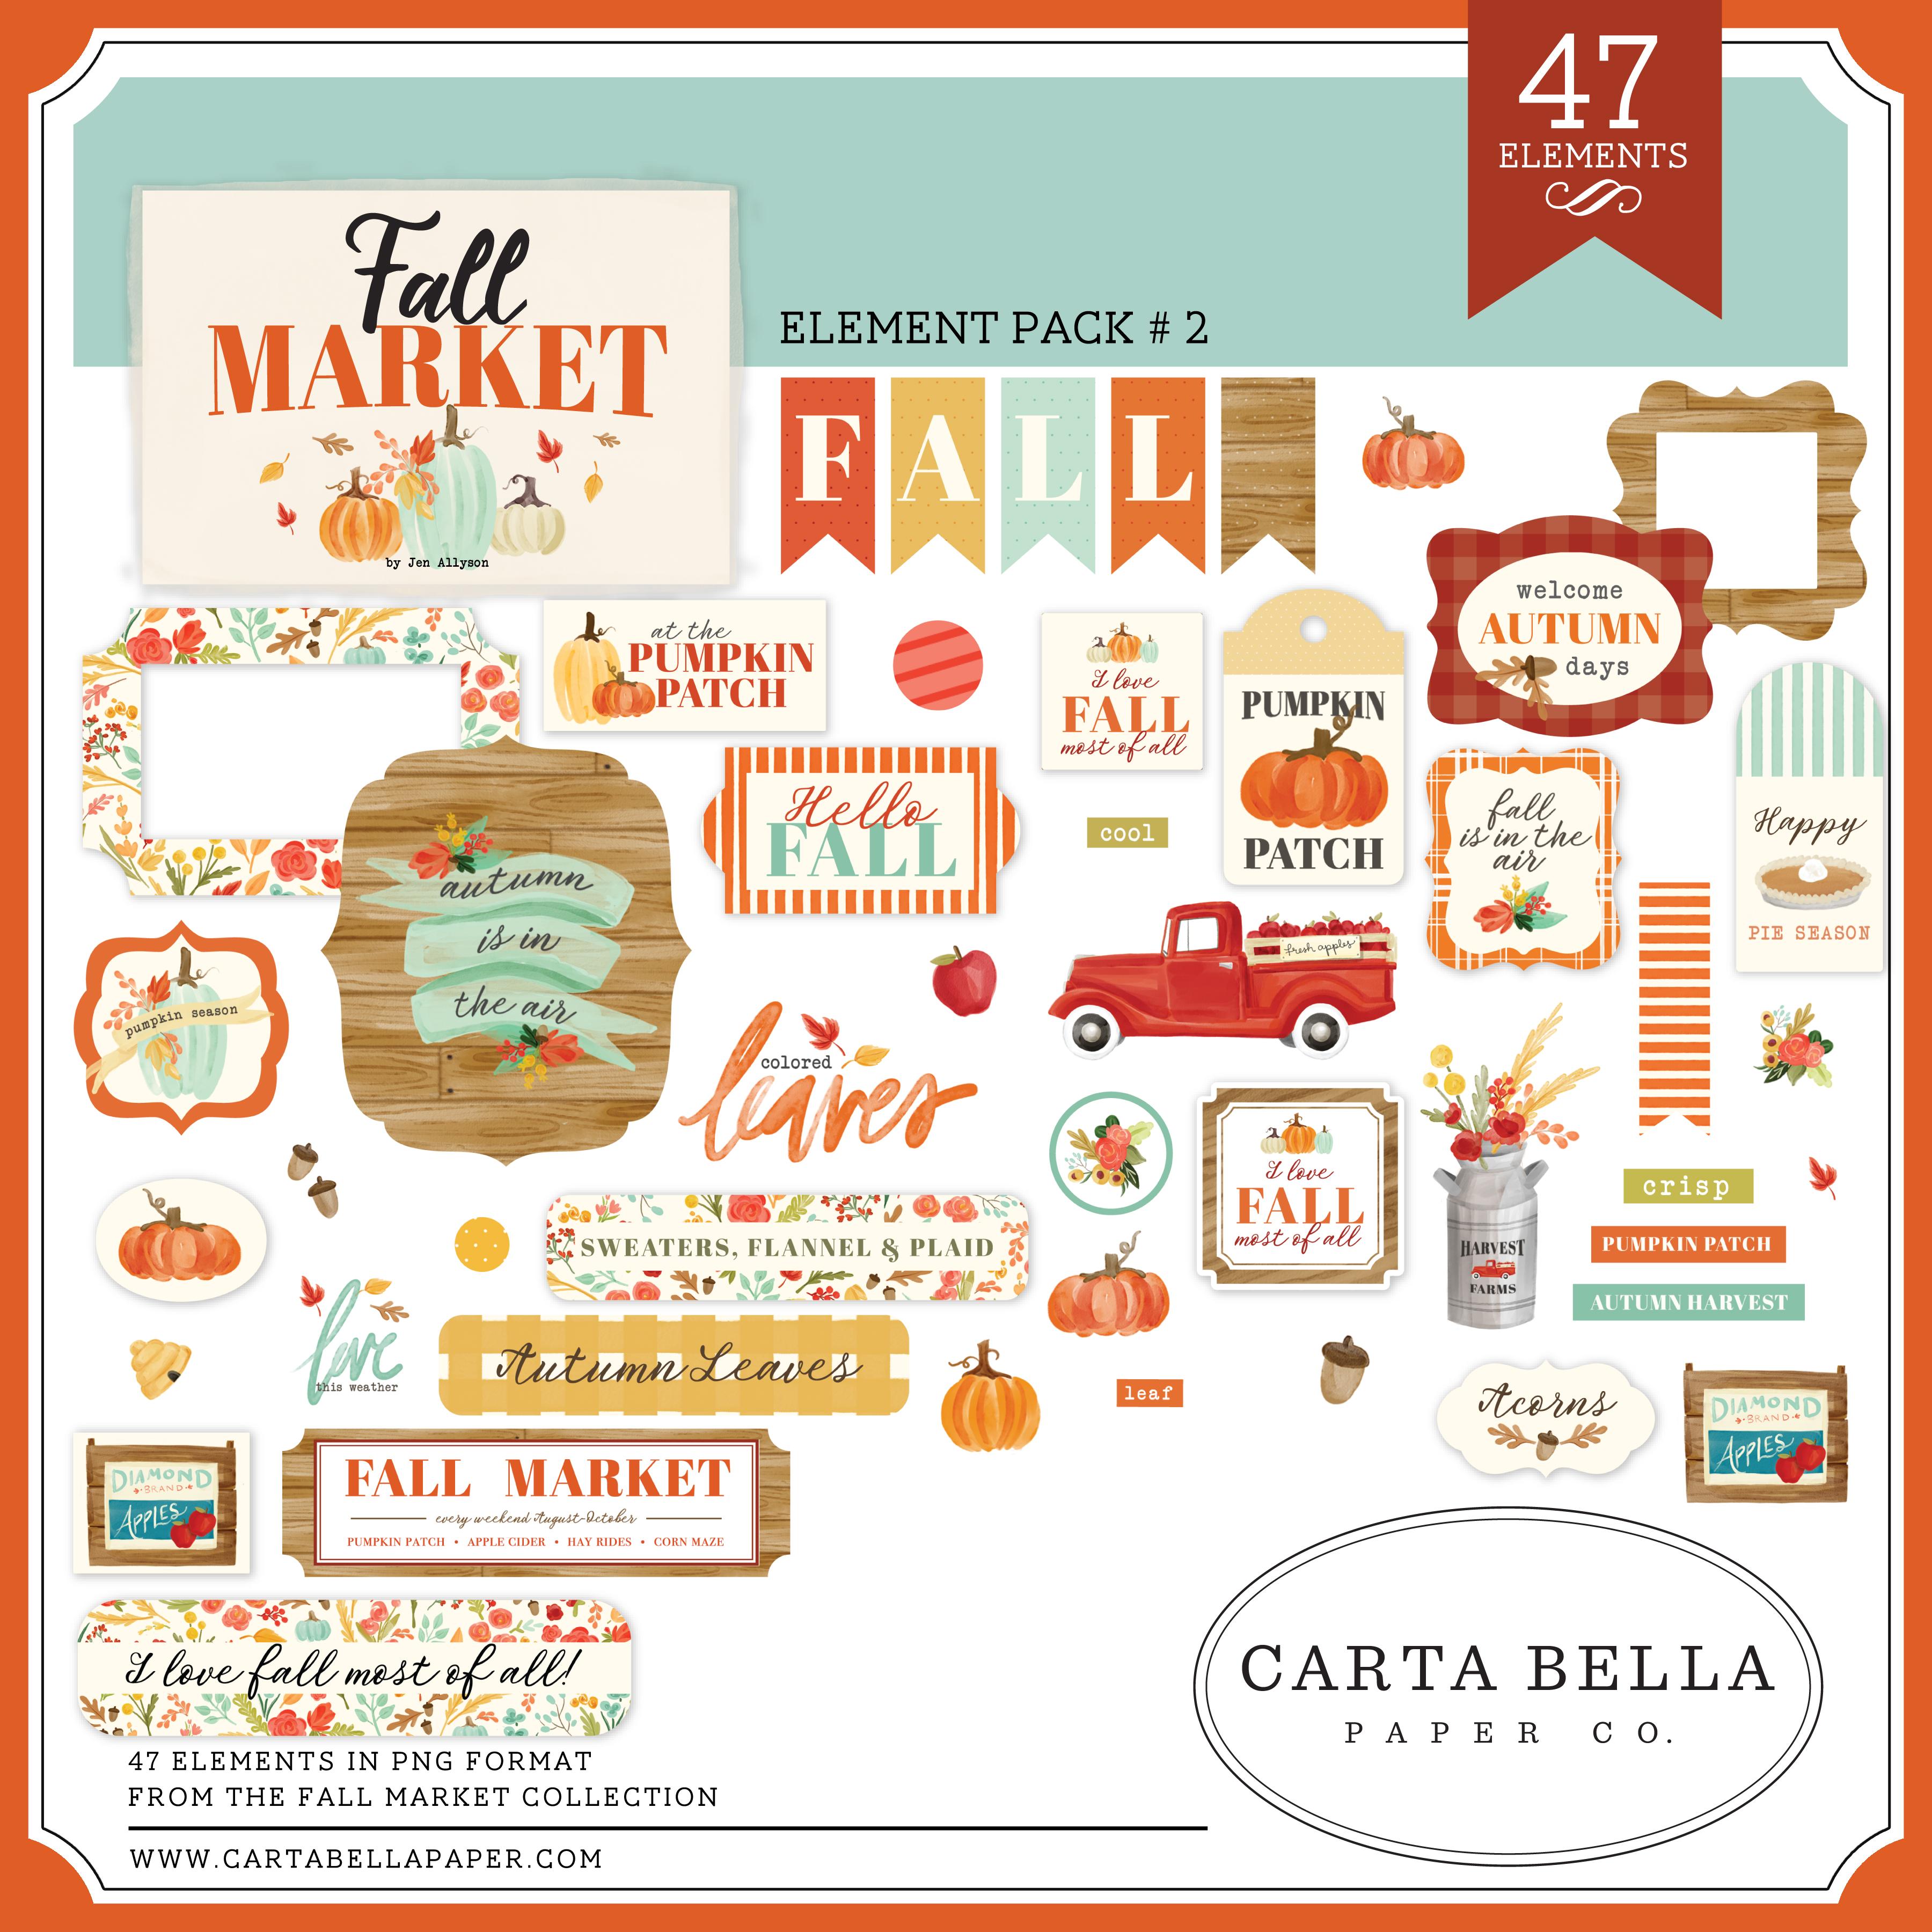 Fall Market Element Pack #2